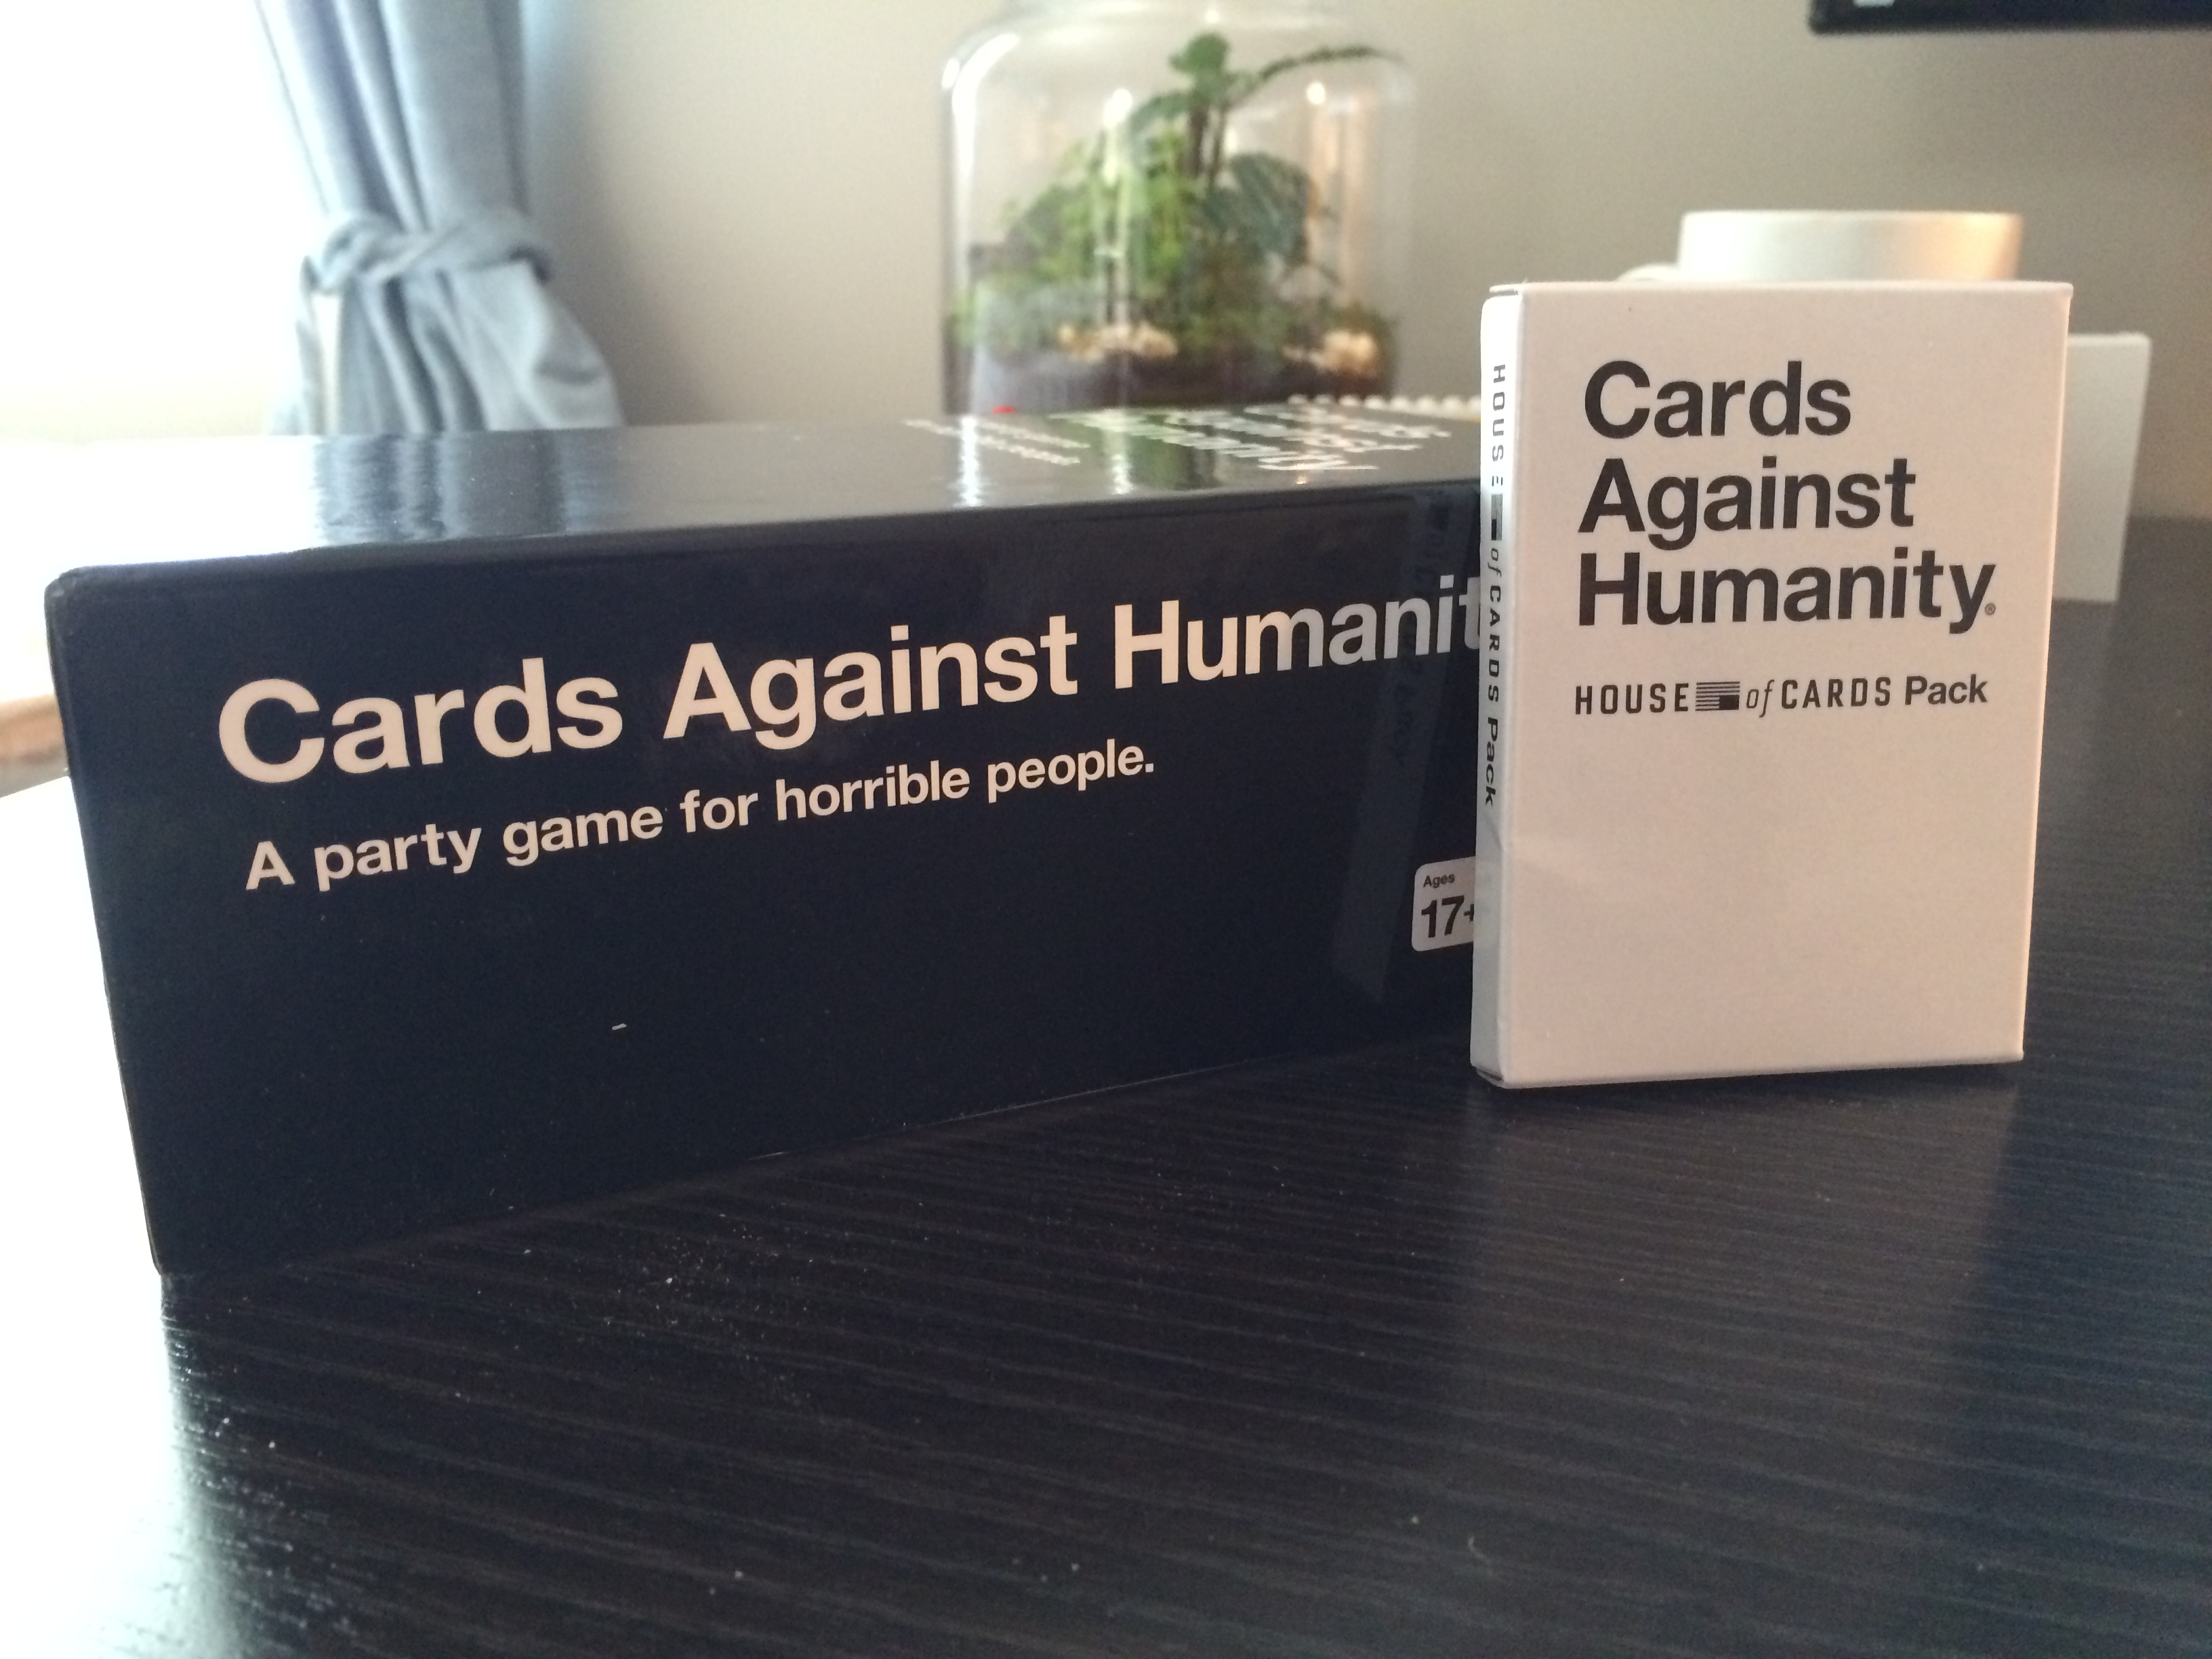 Contest: House of Cards meets Cards Against Humanity!